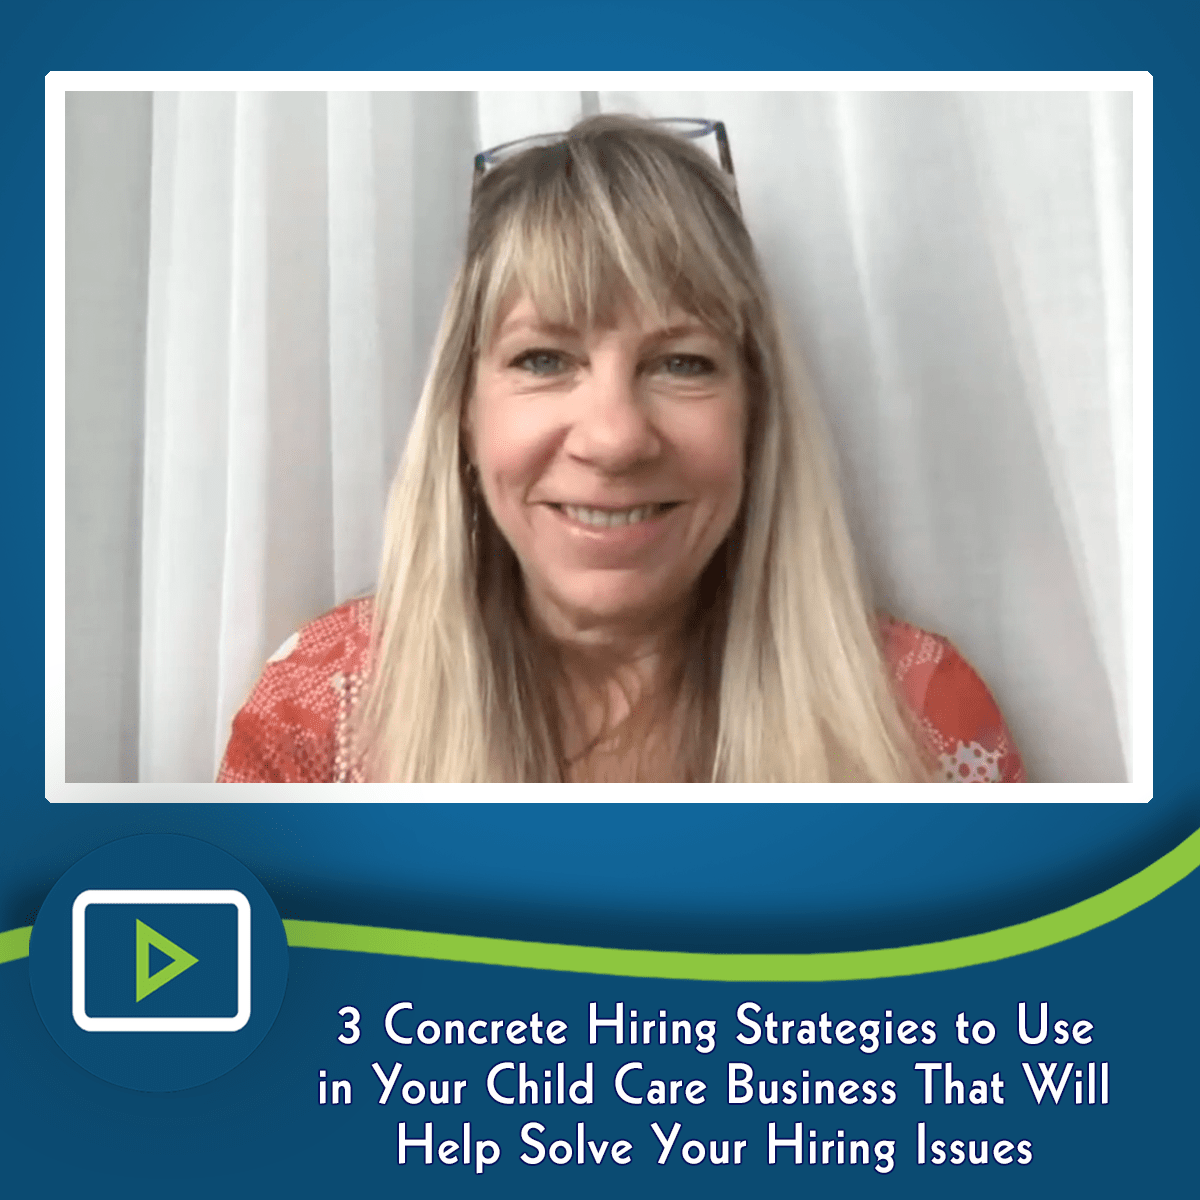 3 Concrete Hiring Strategies to Use in Your Child Care Business That Will Help Solve Your Hiring Issues